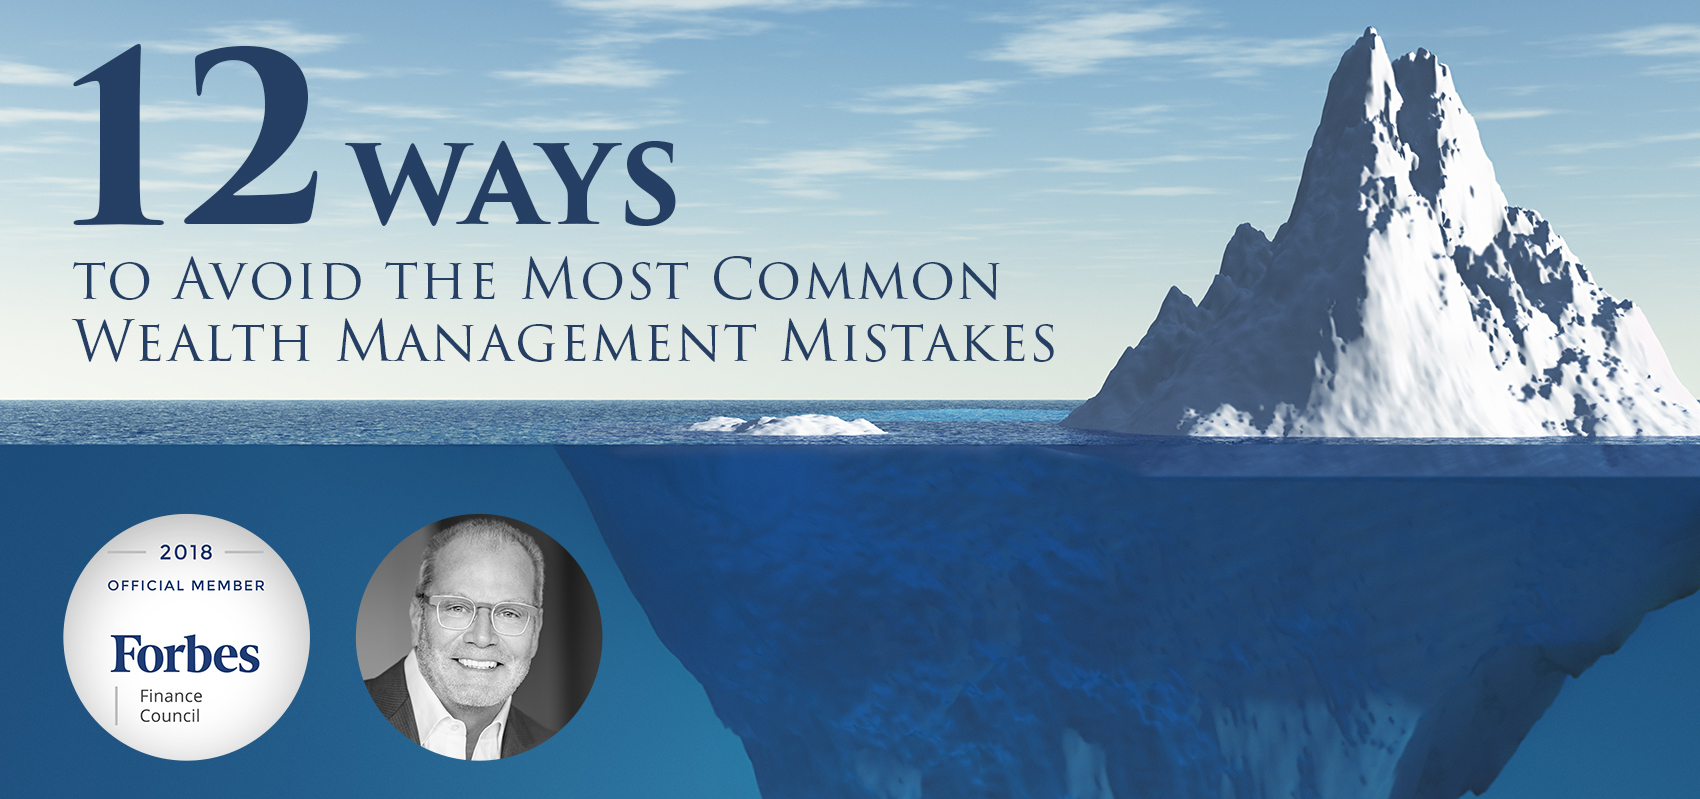 12 Ways to Avoid the Most Common Wealth Management Mistakes